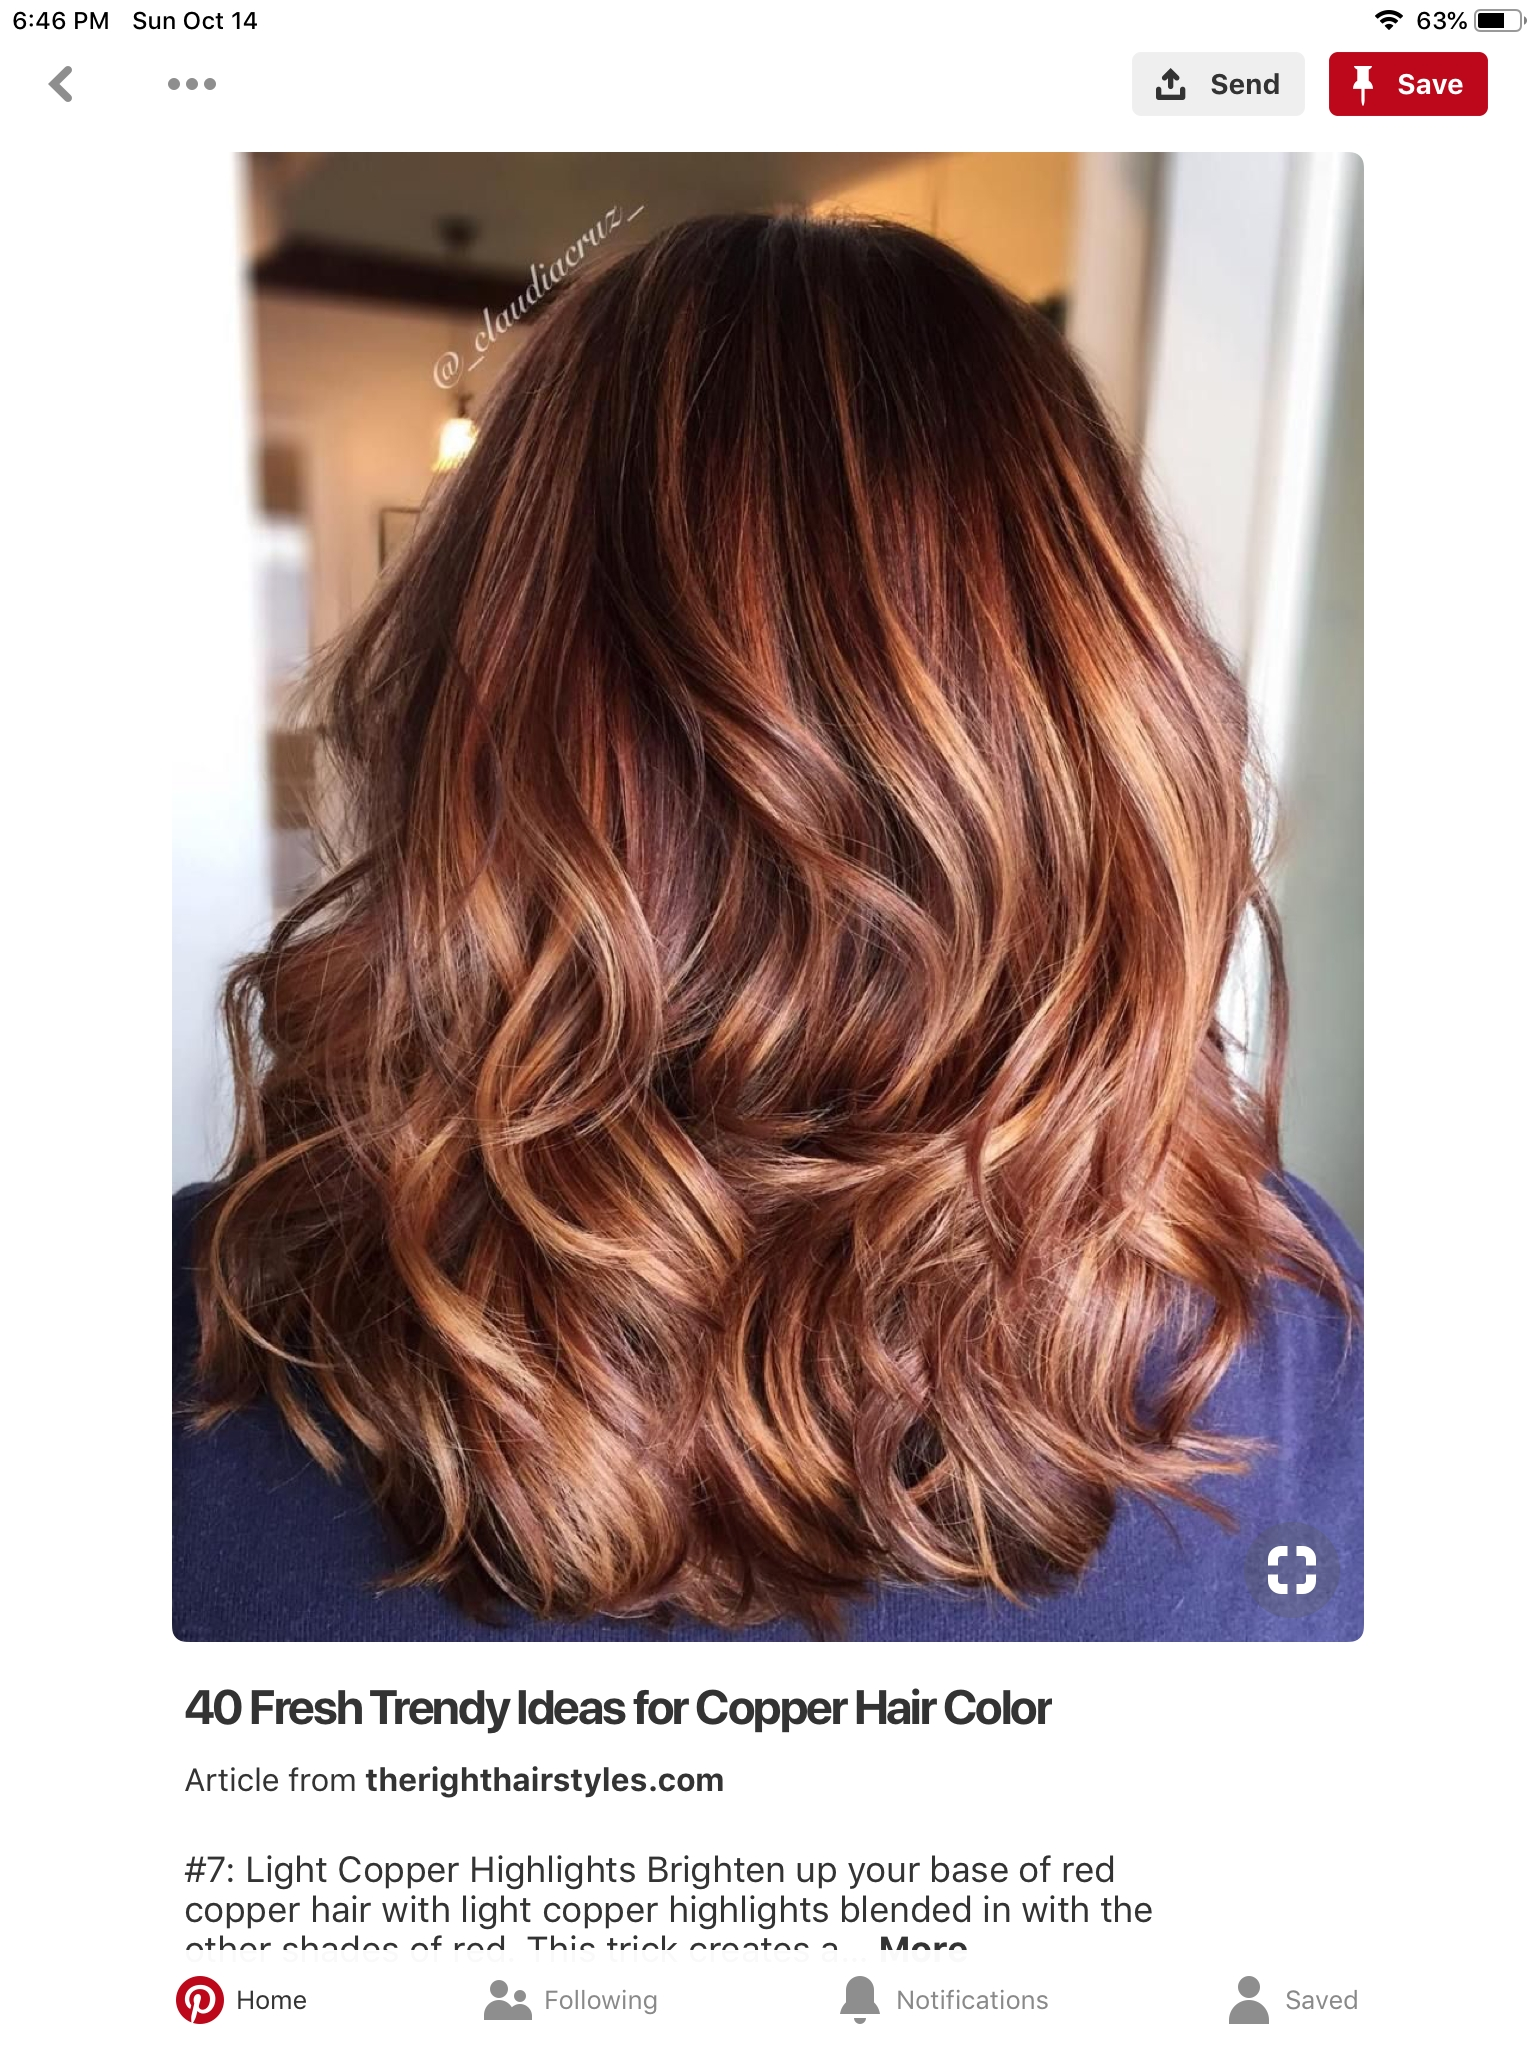 Pin By Becky Bridwell On Haircuts | Pinterest | Hair, Brown Hair in Asian Hair With Red Highlights